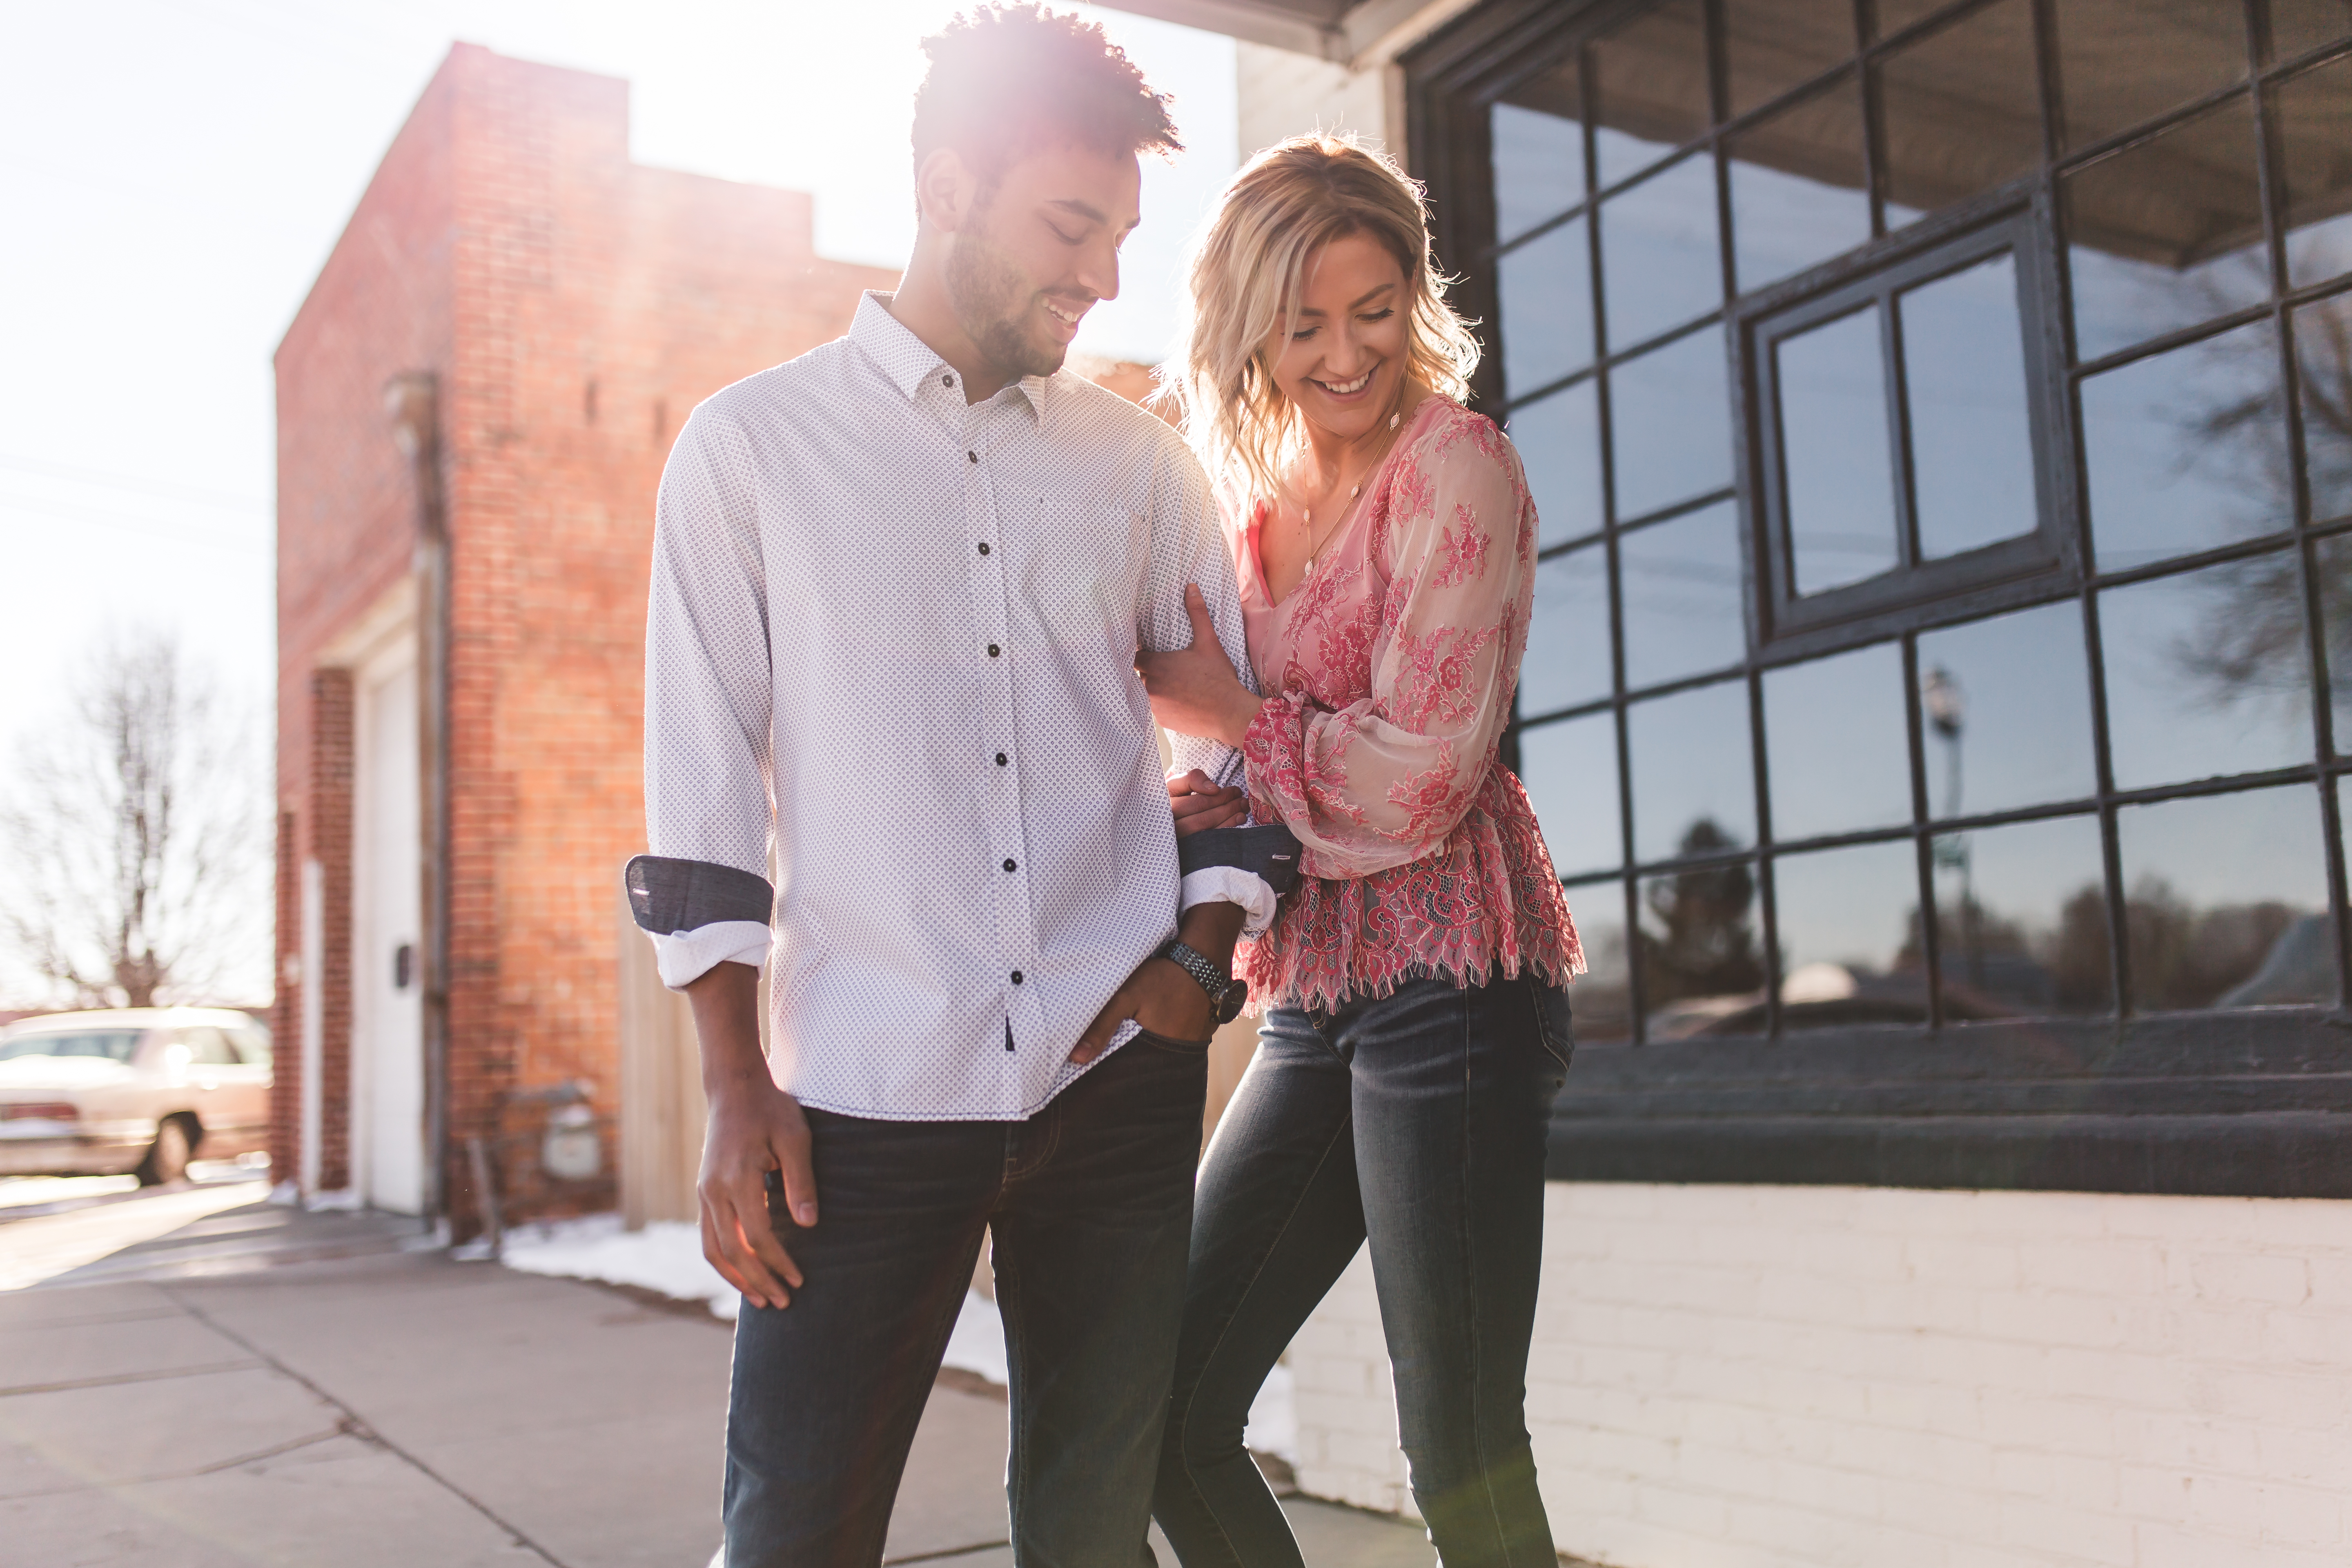 Date night should be all fun and no stress, which is where these outfits come in.